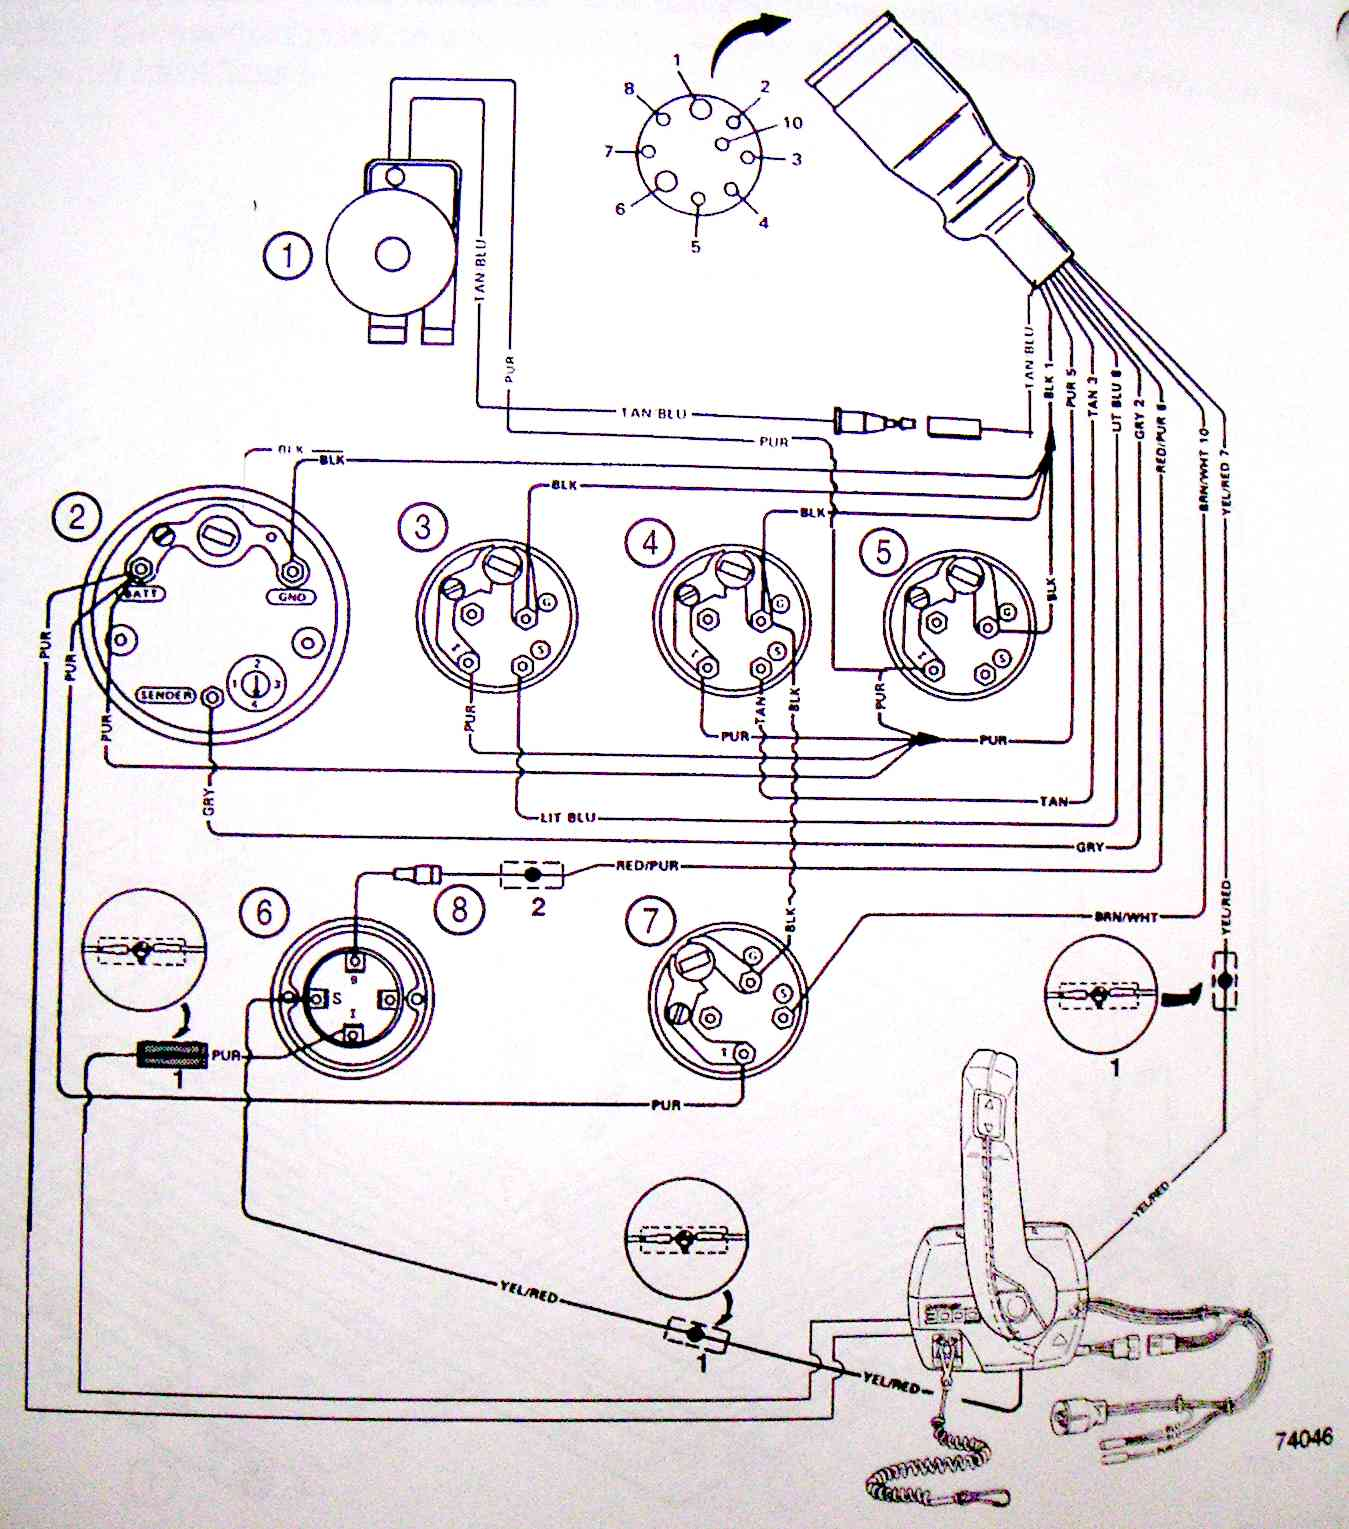 BoatHarness74046 yamaha outboard motor wiring diagrams the wiring diagram volvo penta wiring harness diagram at sewacar.co